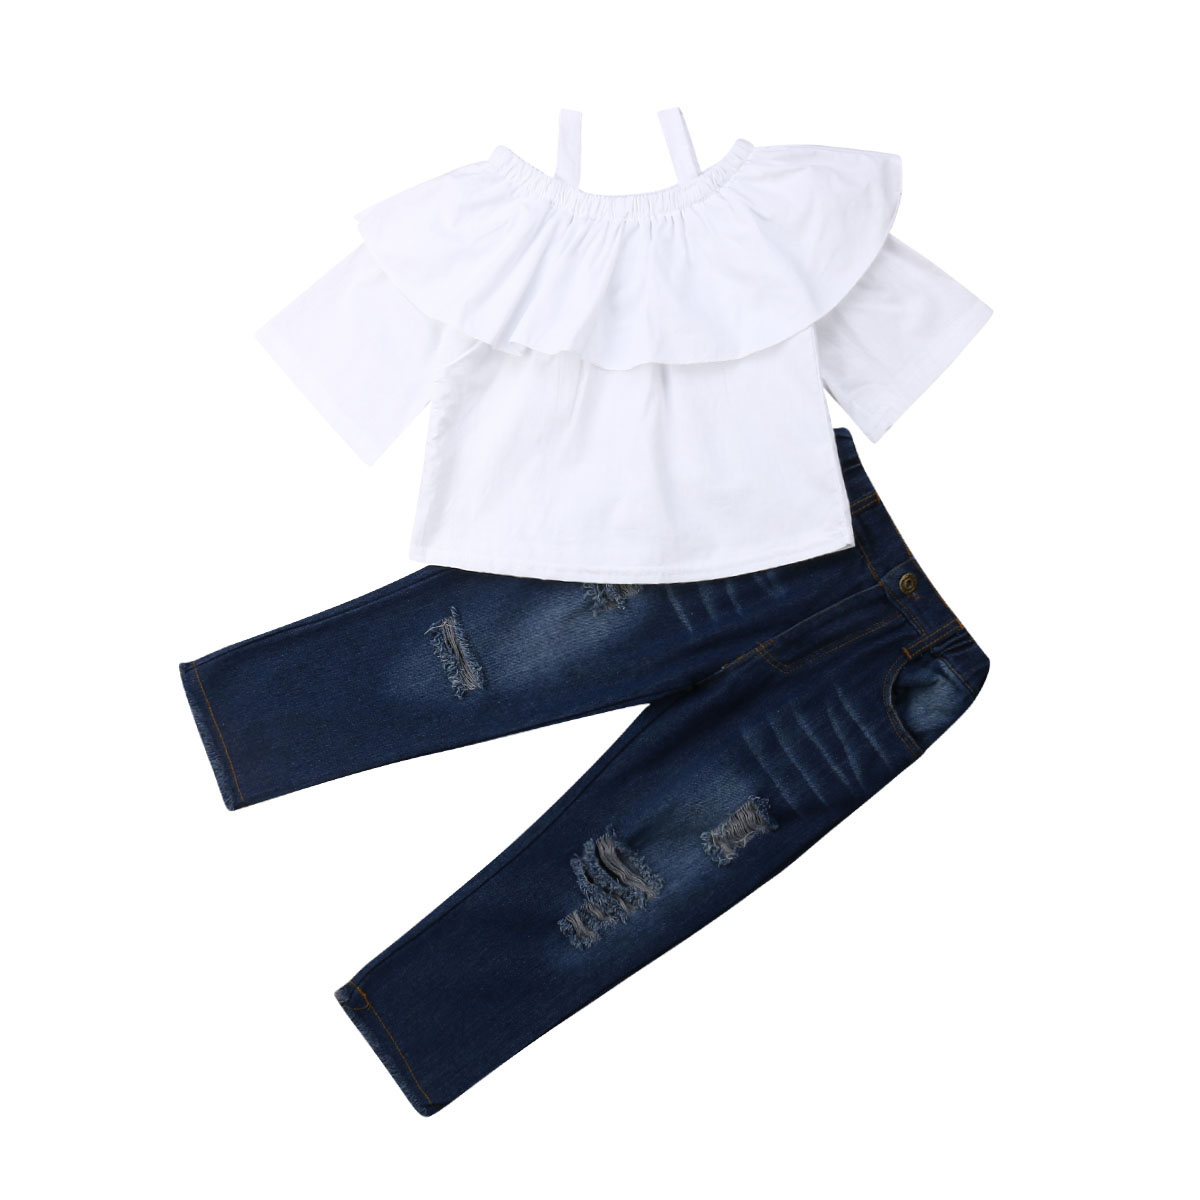 2PCS Toddler Kids Baby Girls Outfits Clothes T-shirt Tops+Pants Trousers Sets